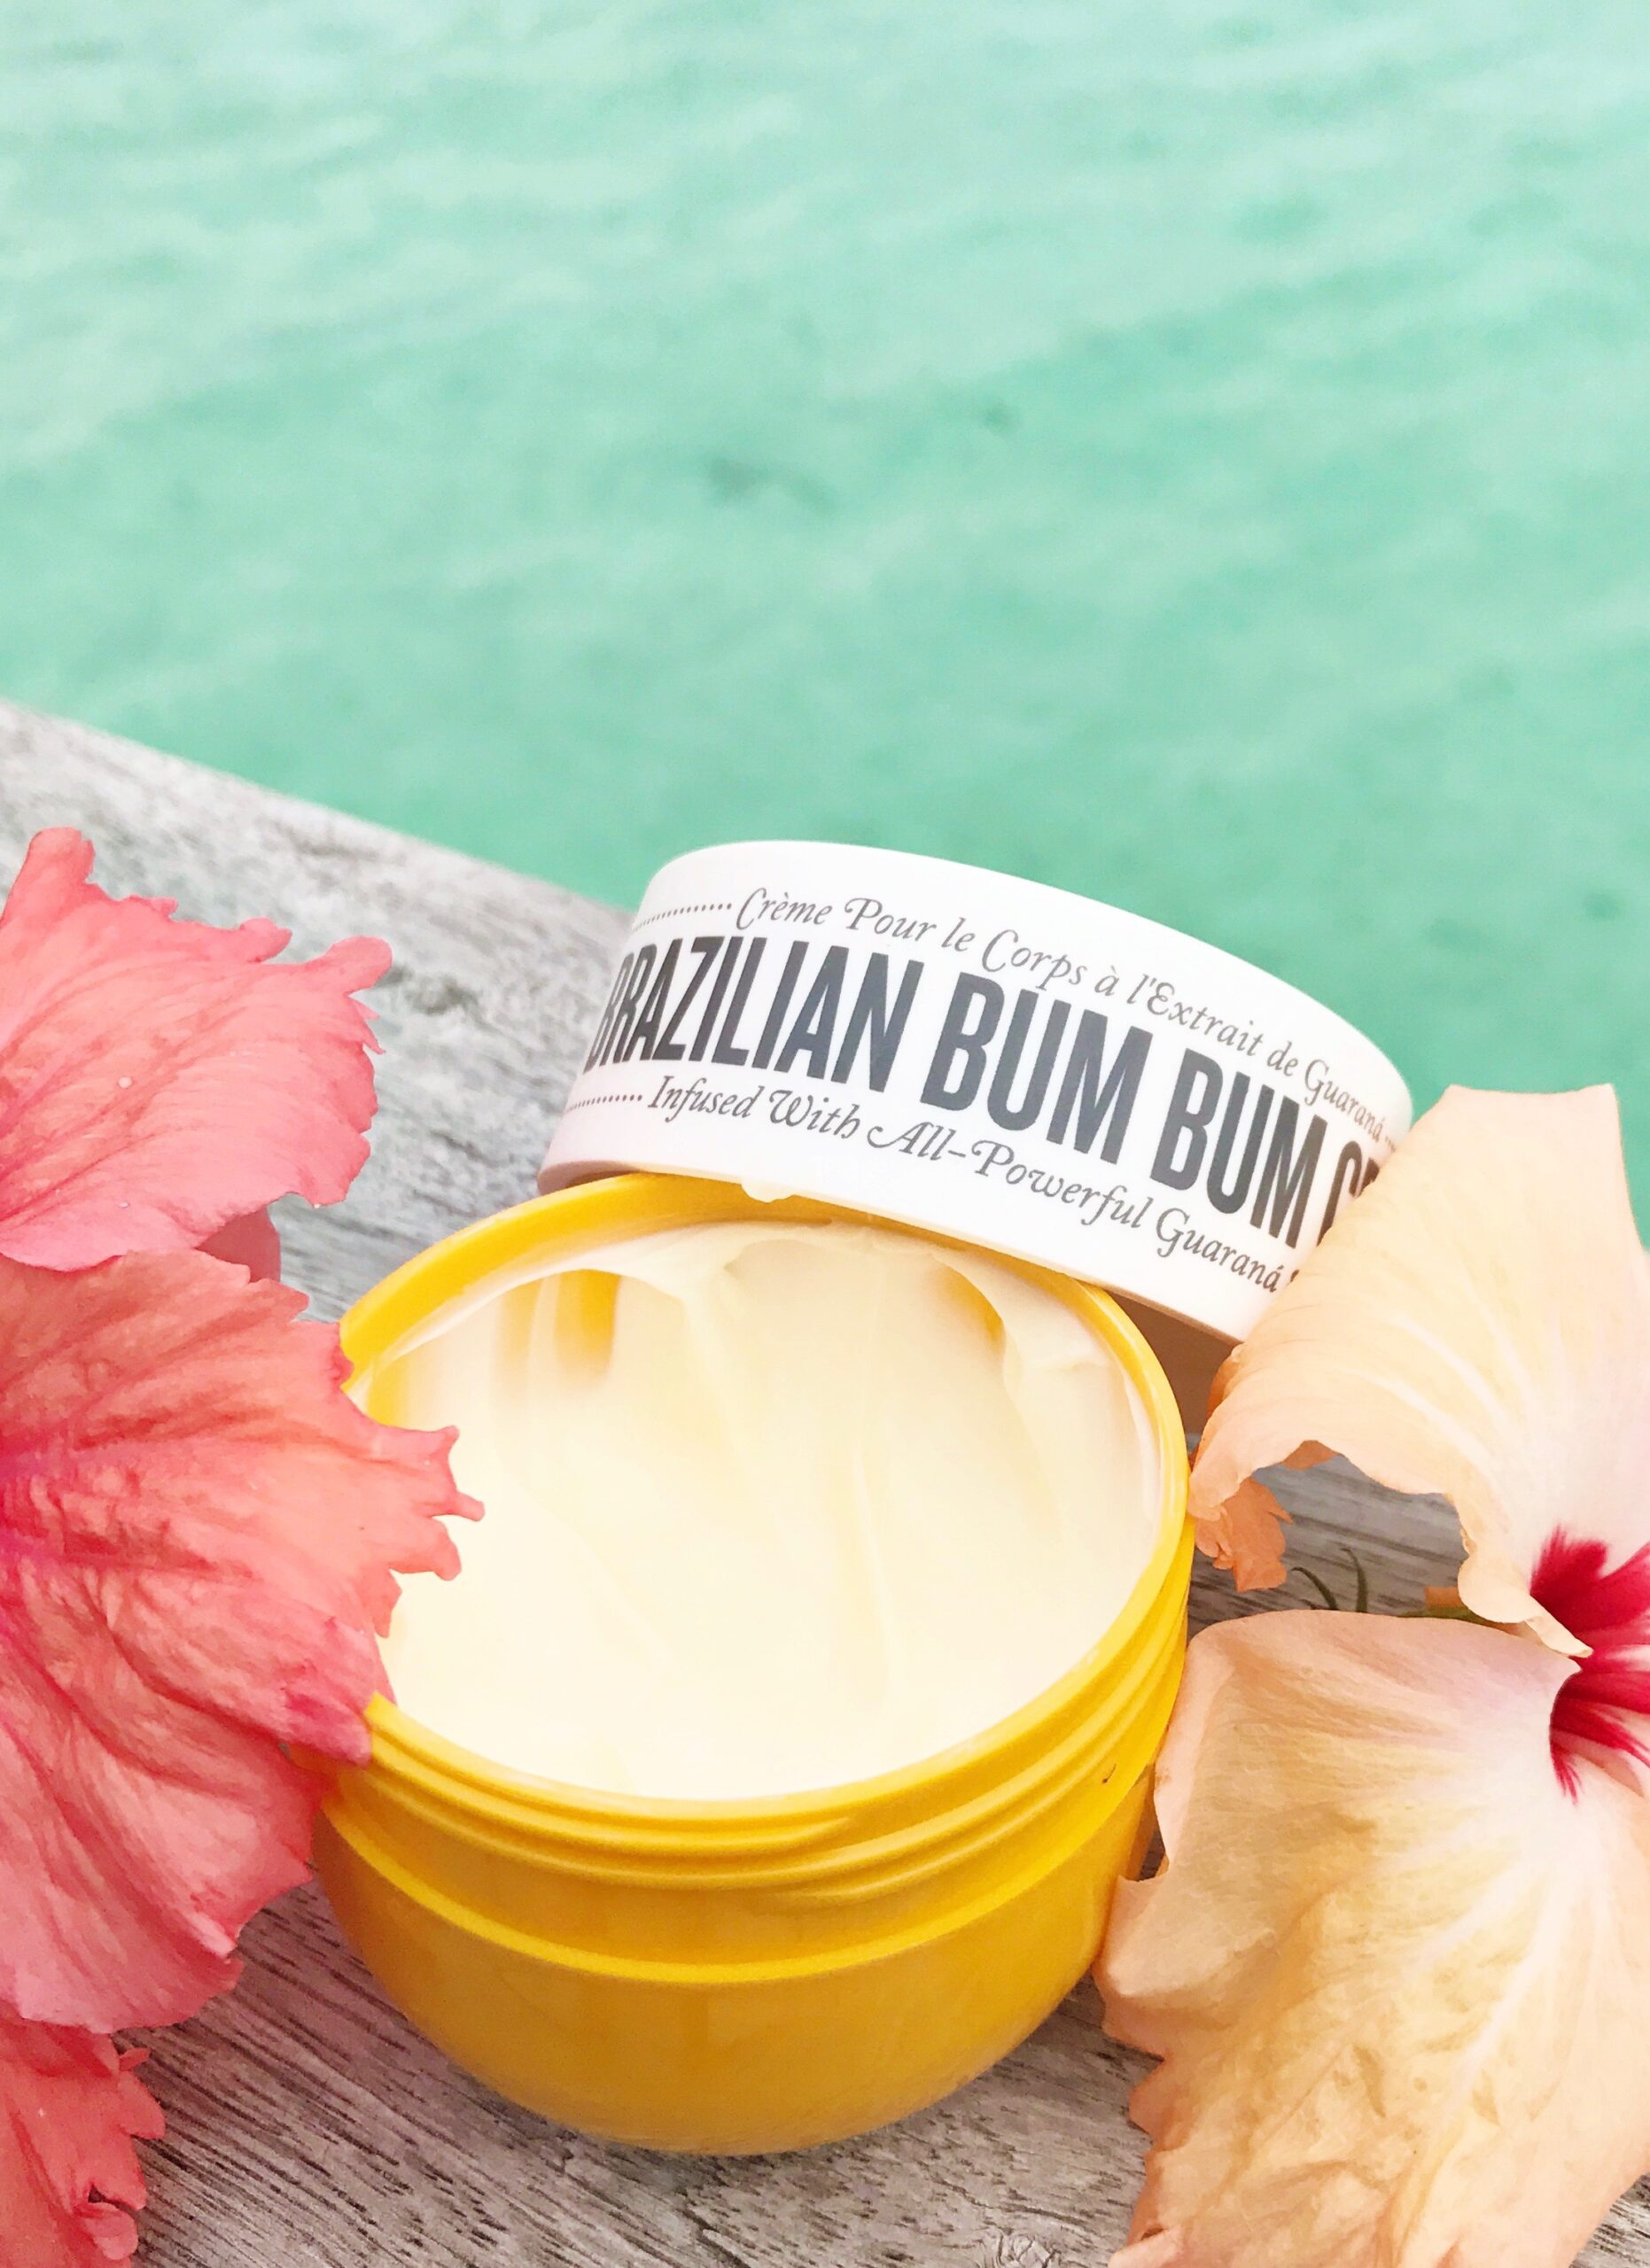 What Is Bum Bum Cream? - Curious about why people are raving about Bum Bum Cream? I'm sharing my honest opinion on the product! | Brazilian Bum Bum Cream | Brazilian Bum Bum Cream Review | Sol de Janeiro Bum Bum Cream